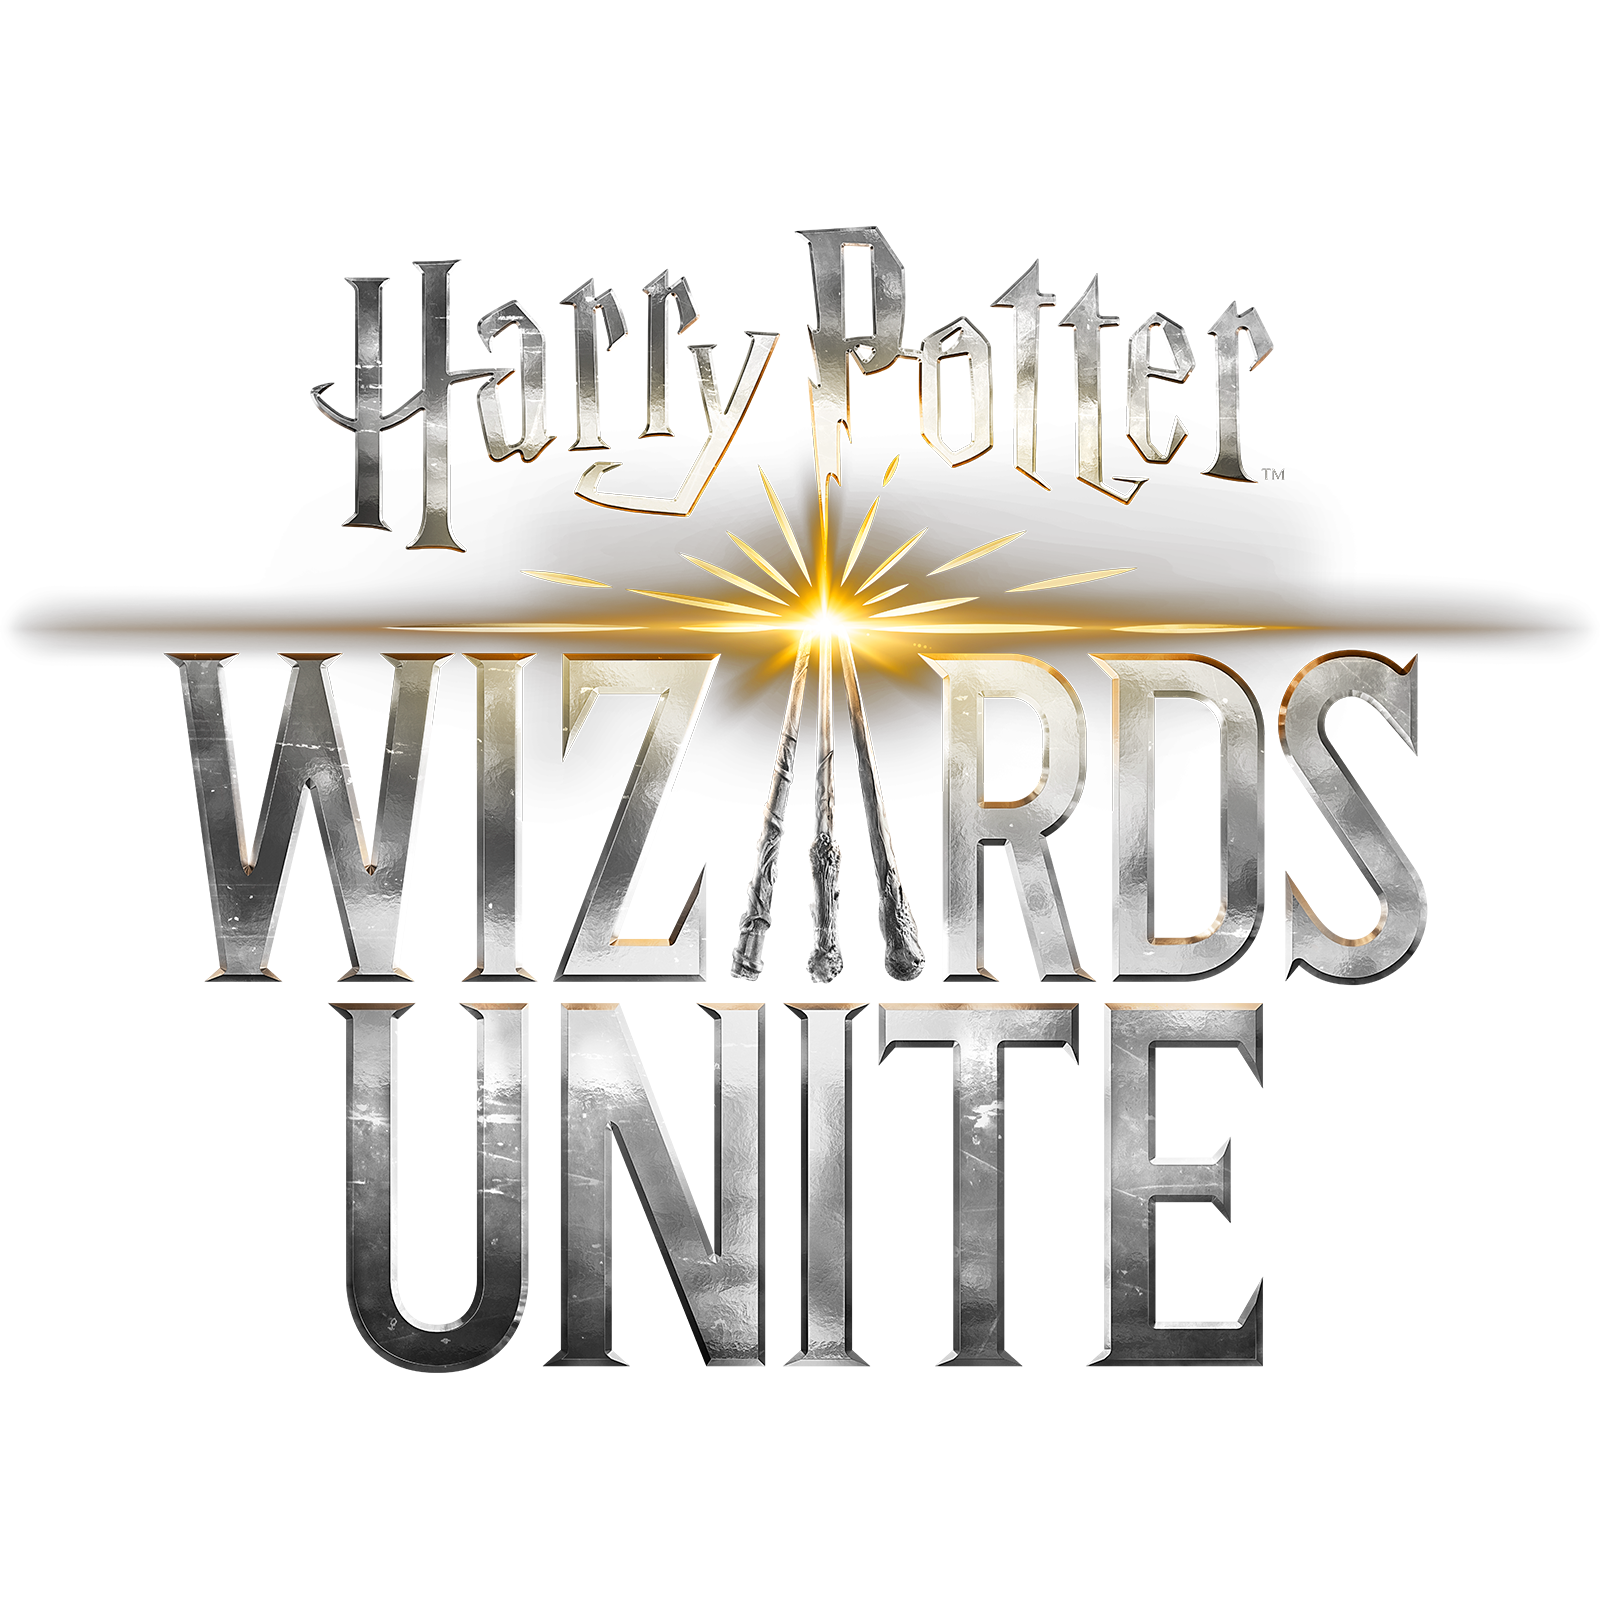 Pin On Harry Potter World Videos Shirts Wizards